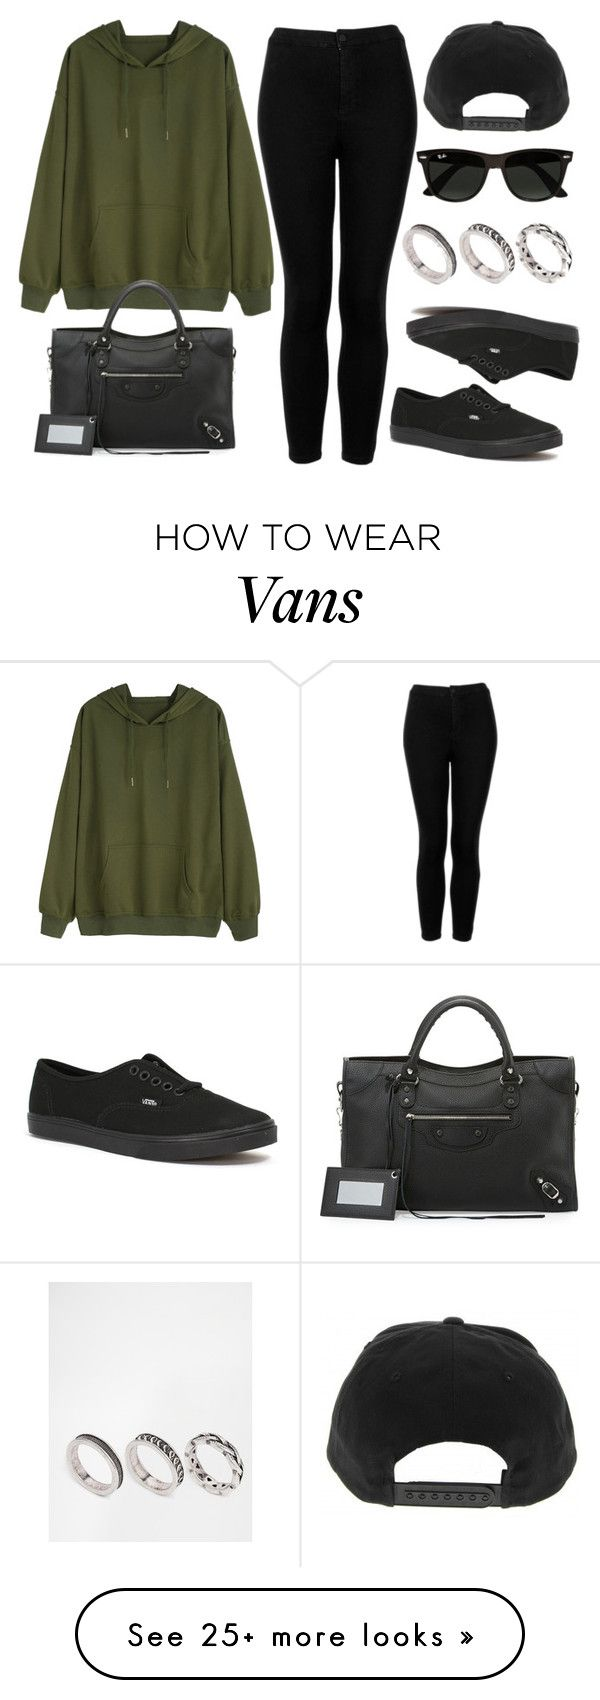 """Style #11362"" by vany-alvarado on Polyvore featuring Topshop, Vans, Balenciaga, Ray-Ban and ASOS"